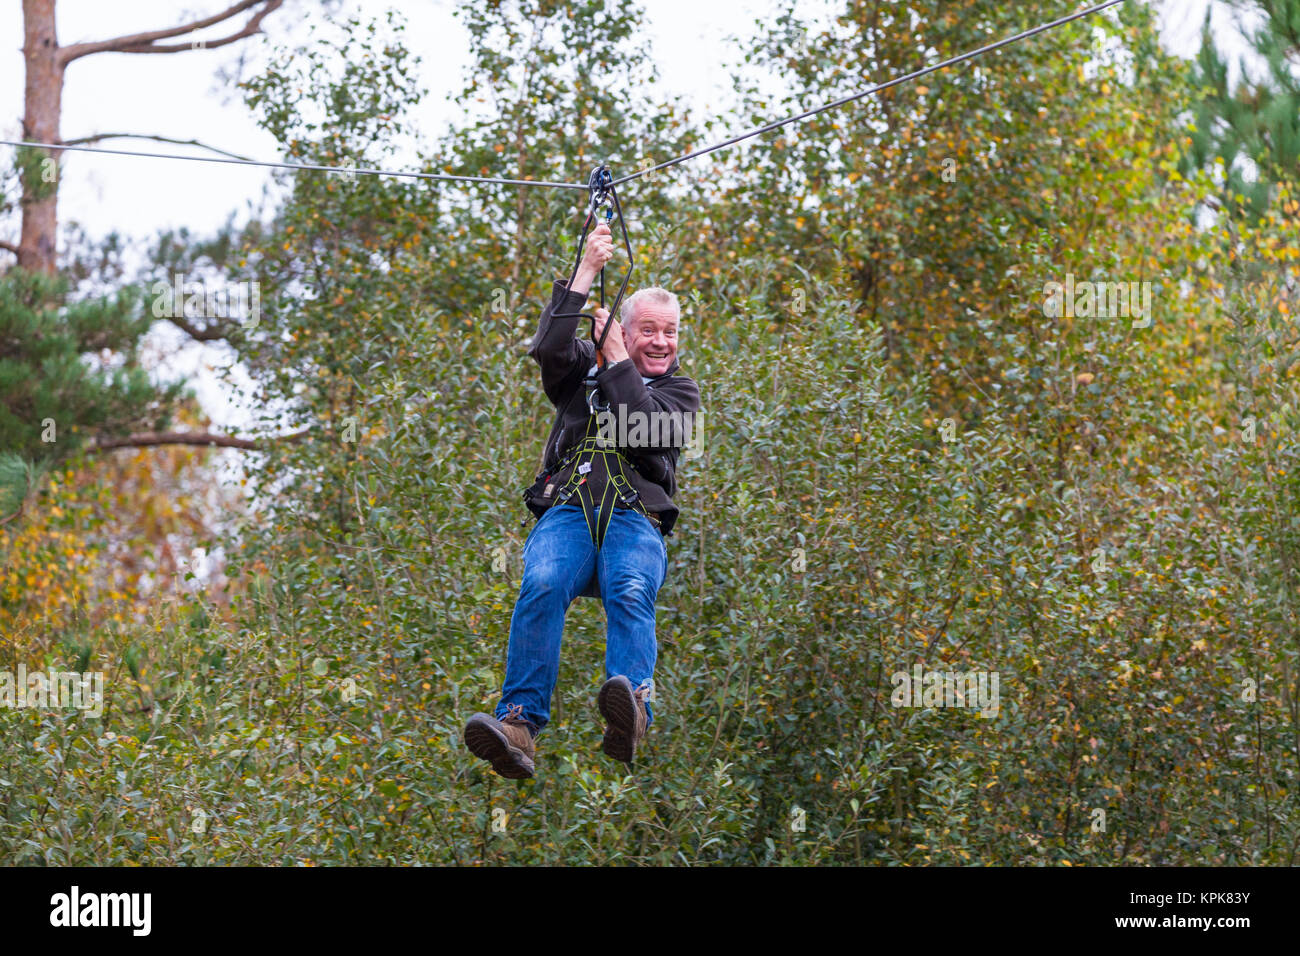 A man on a zipwire with a big grin on his face, Bedgebury National Pinetum at Bedgebury, Kent - Stock Image